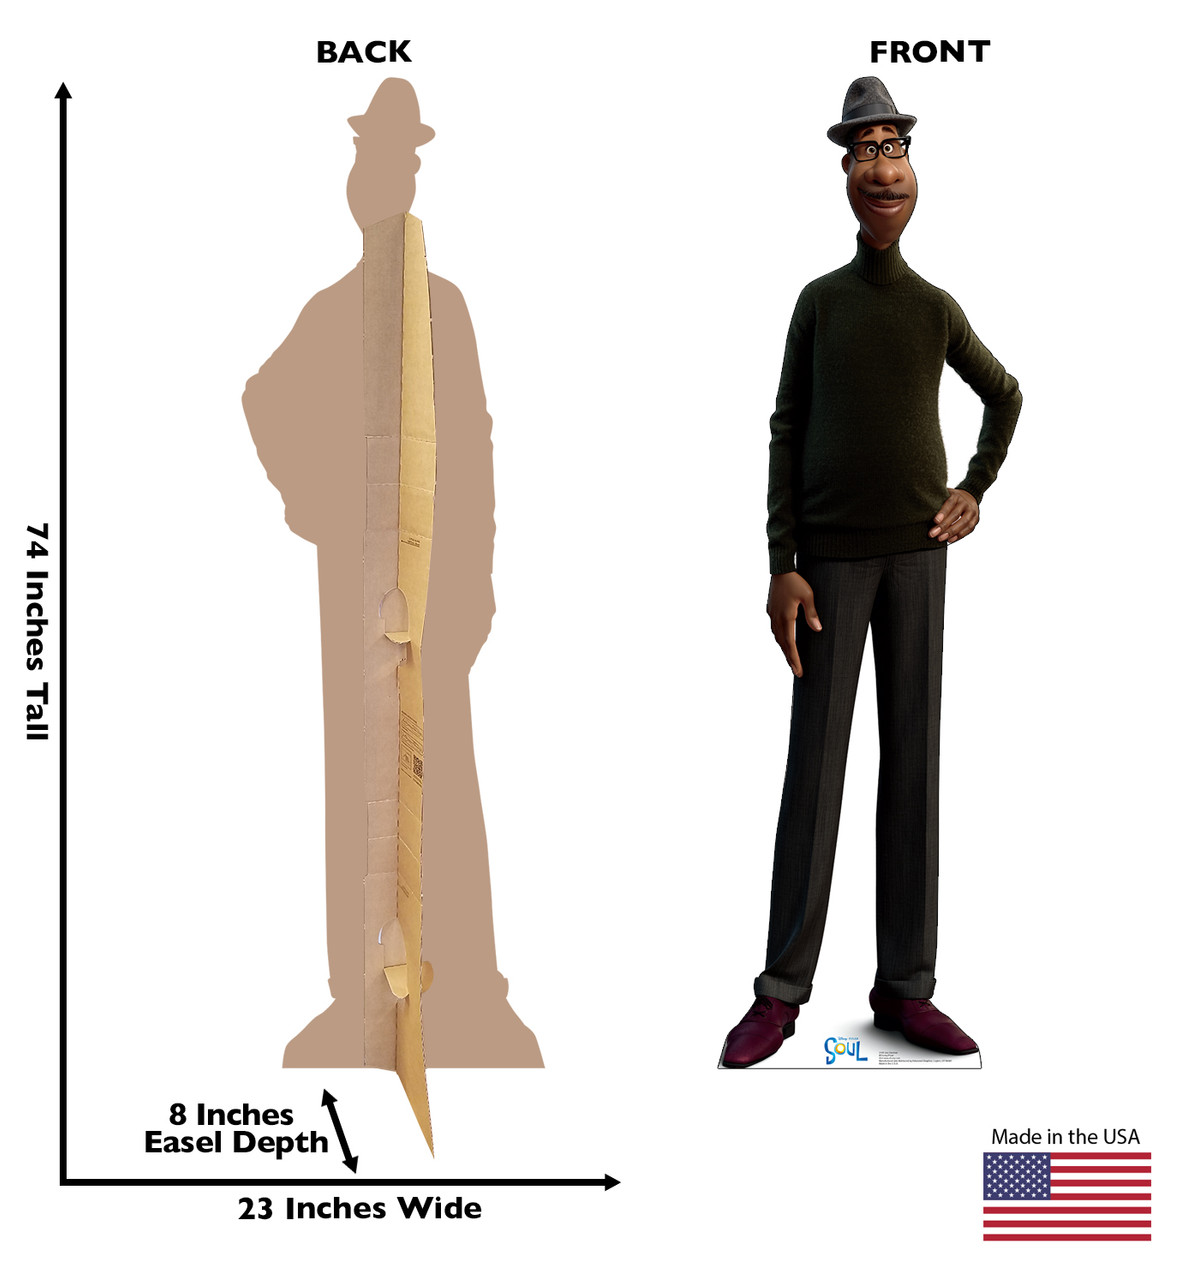 Life-size cardboard standee of Joe Gardner from Disney's Movie Soul with back and front dimensions.